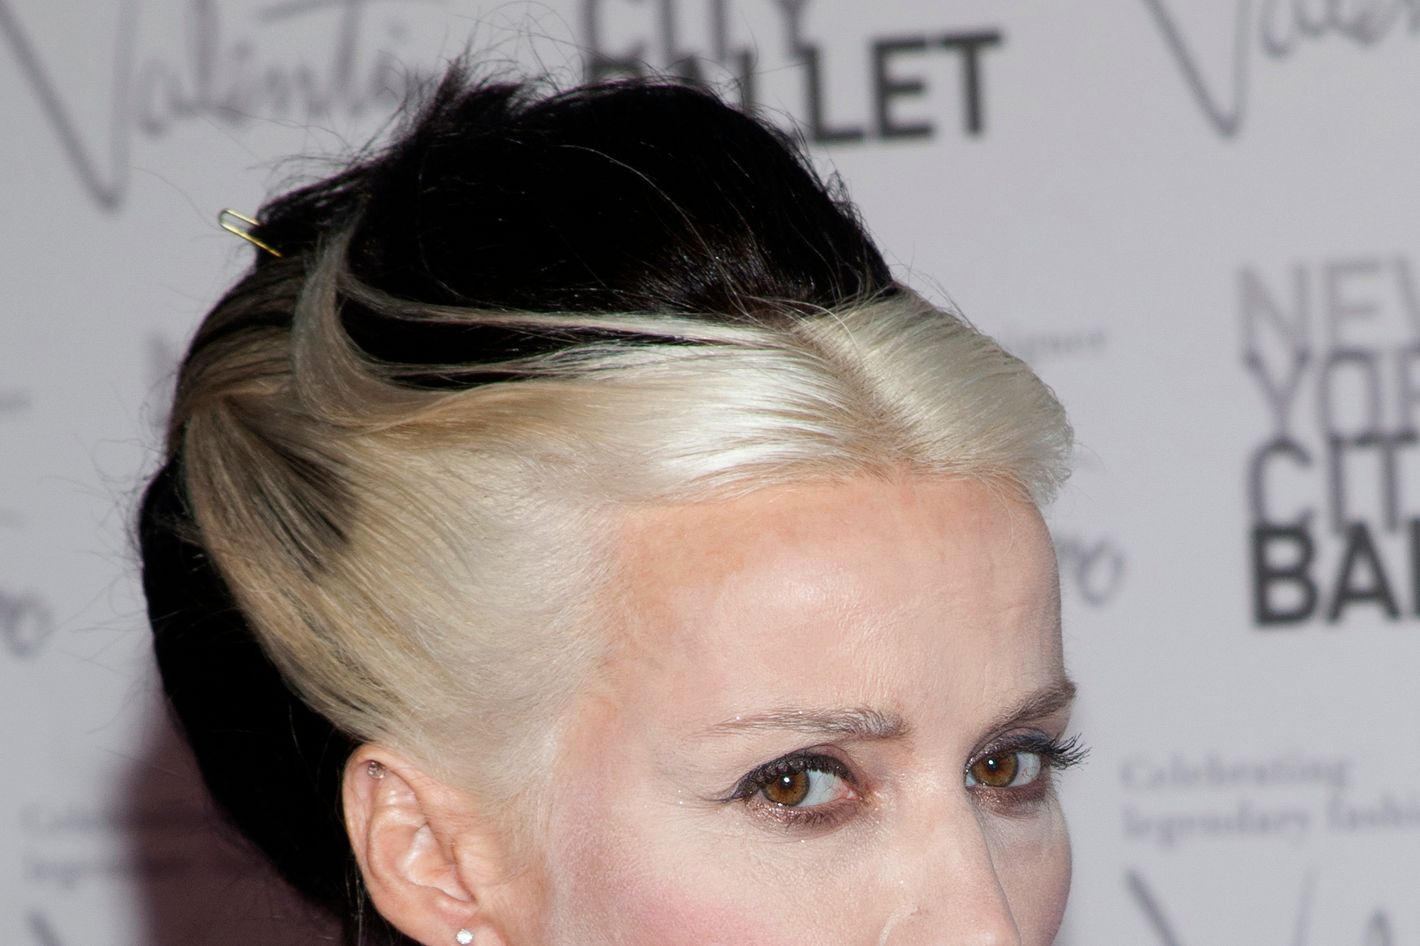 Leaked Daphne Guinness nudes (65 foto and video), Pussy, Leaked, Selfie, underwear 2020